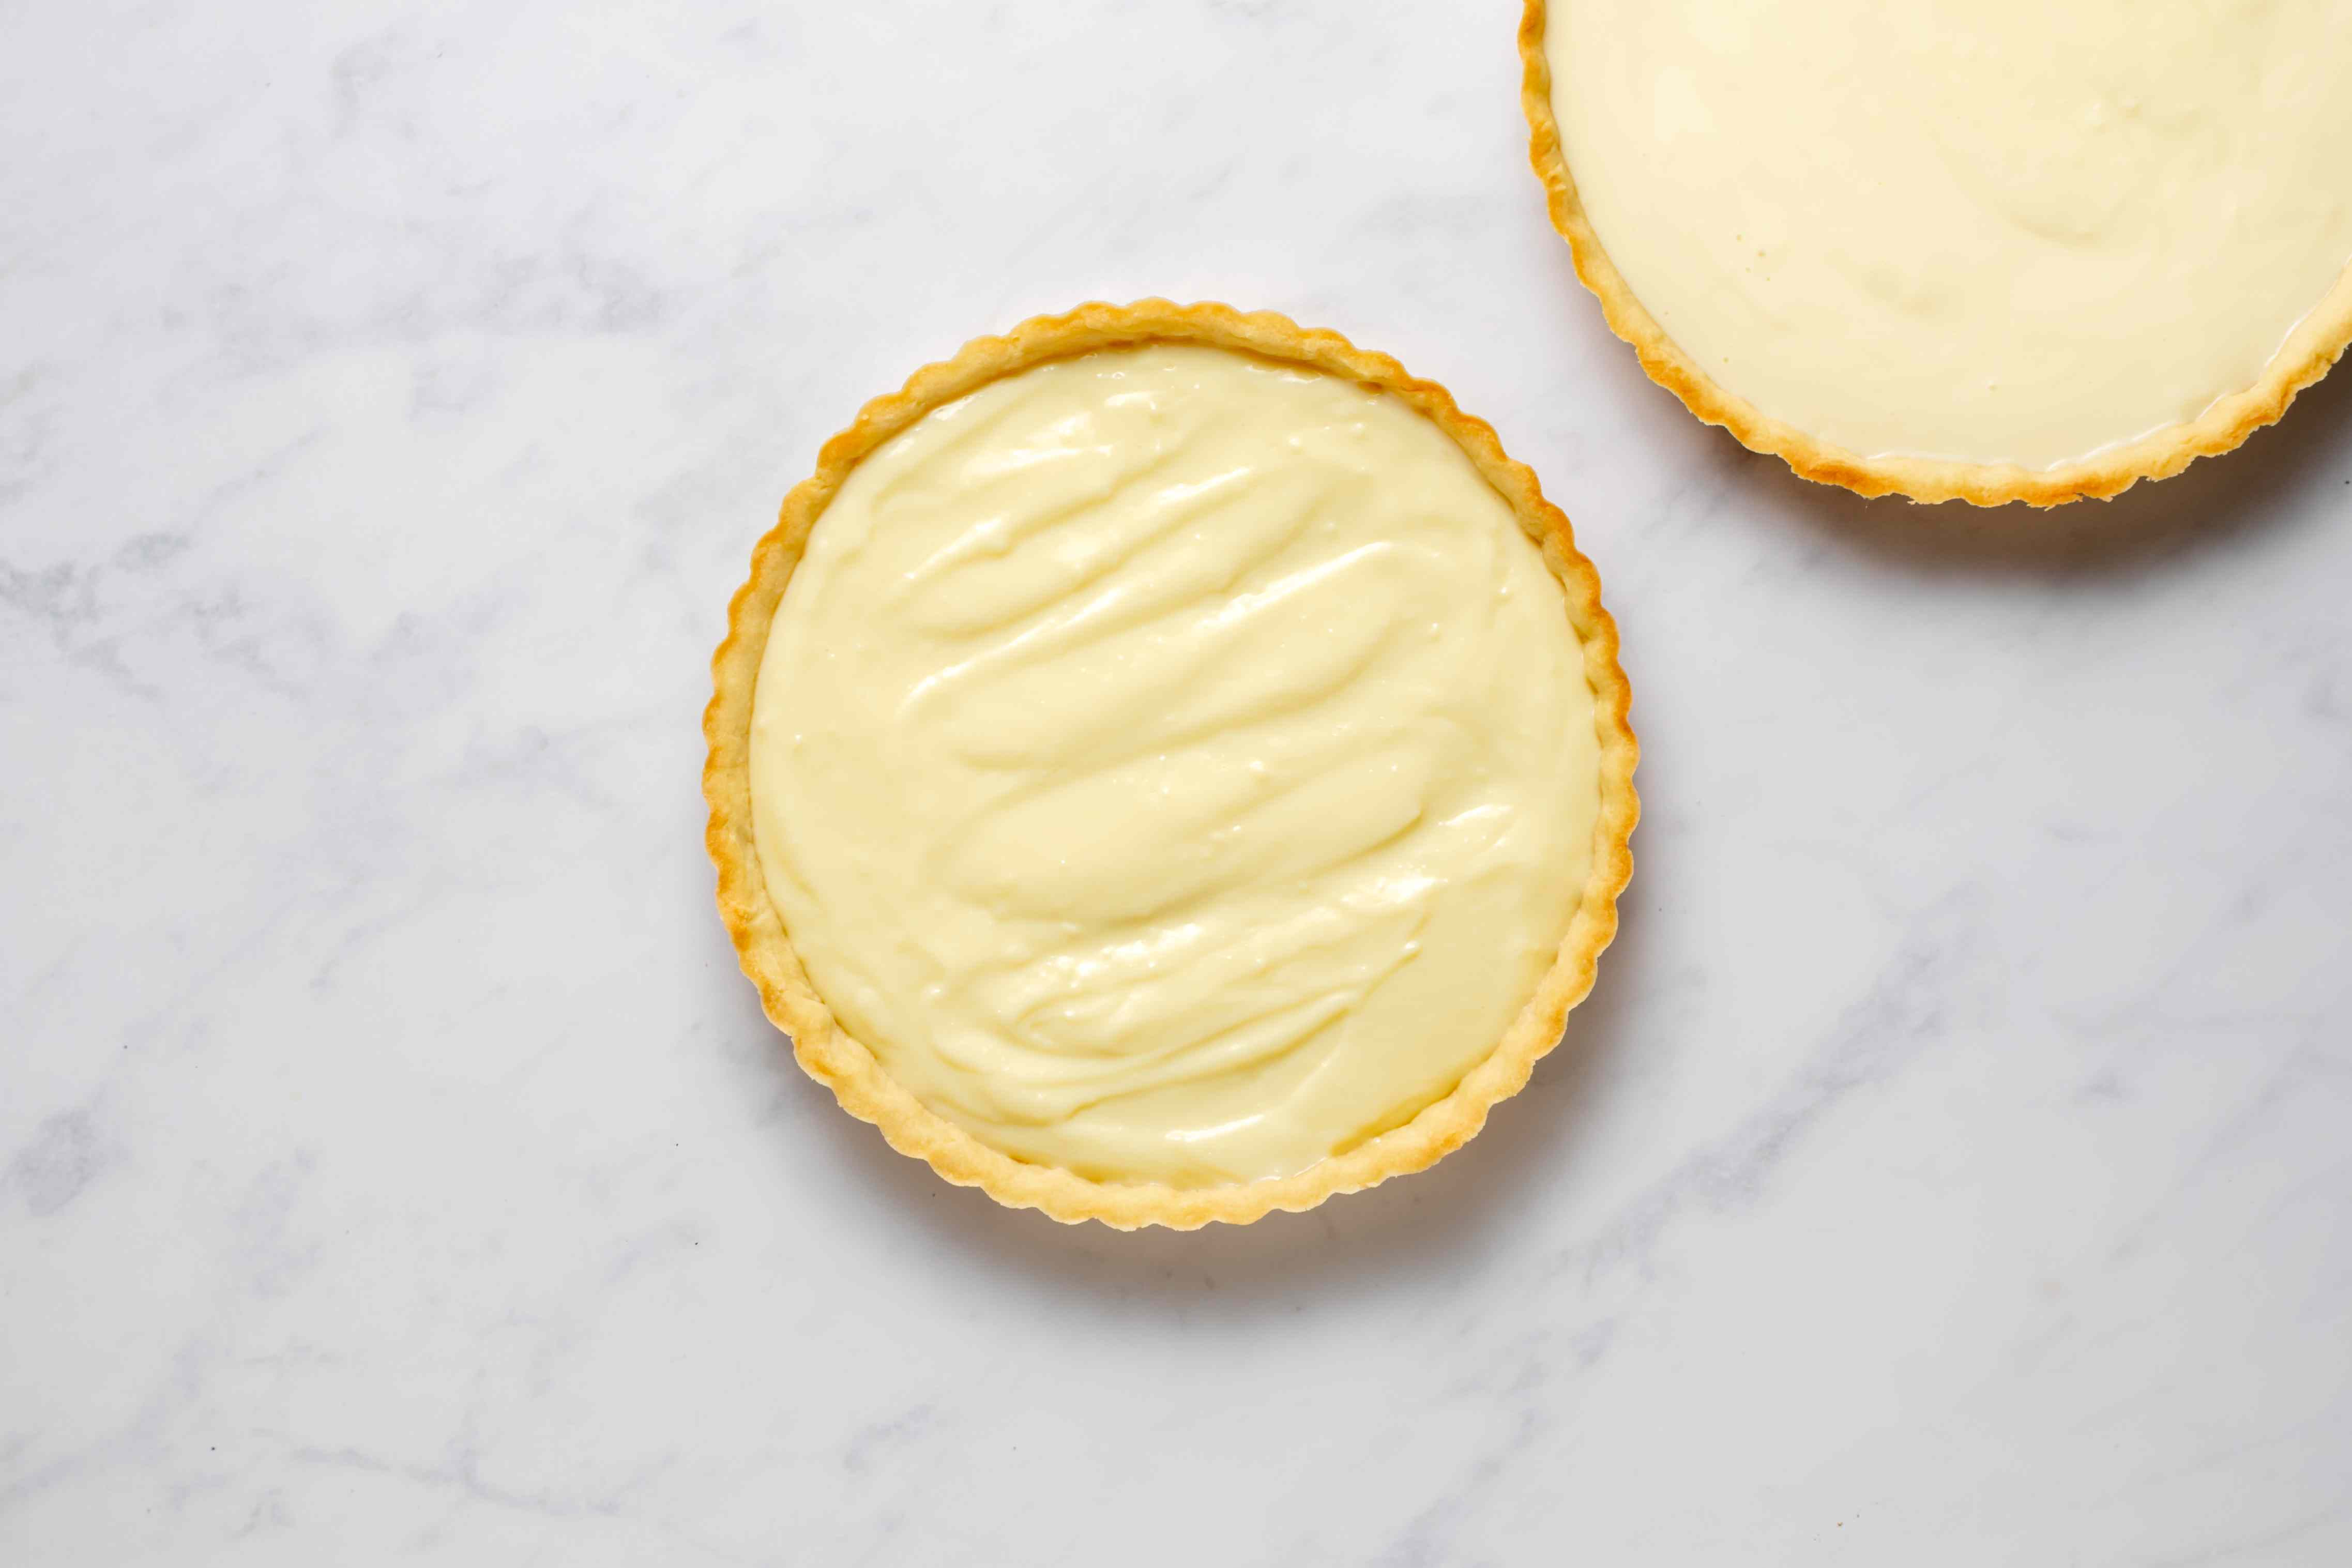 tart crust filled with pastry cream